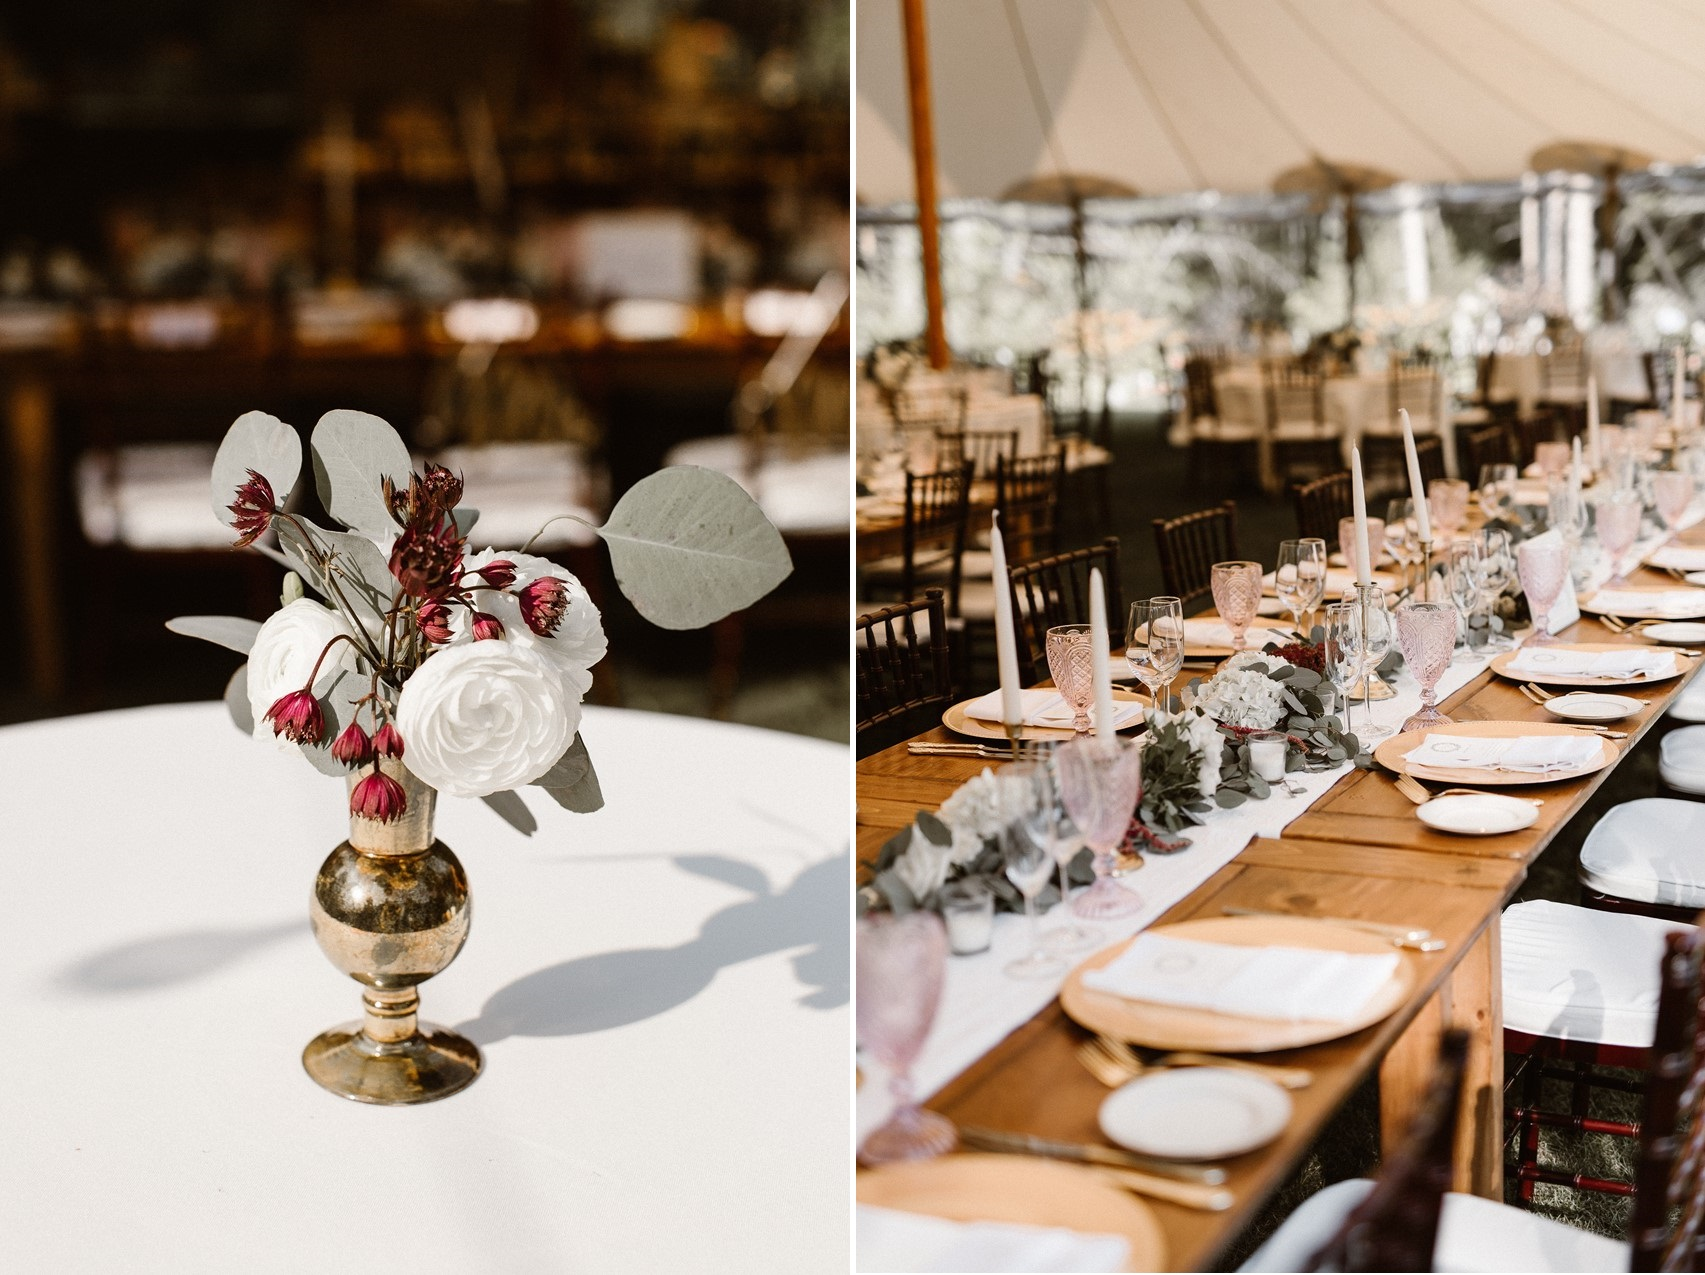 Rustic Elegant Wedding Tables